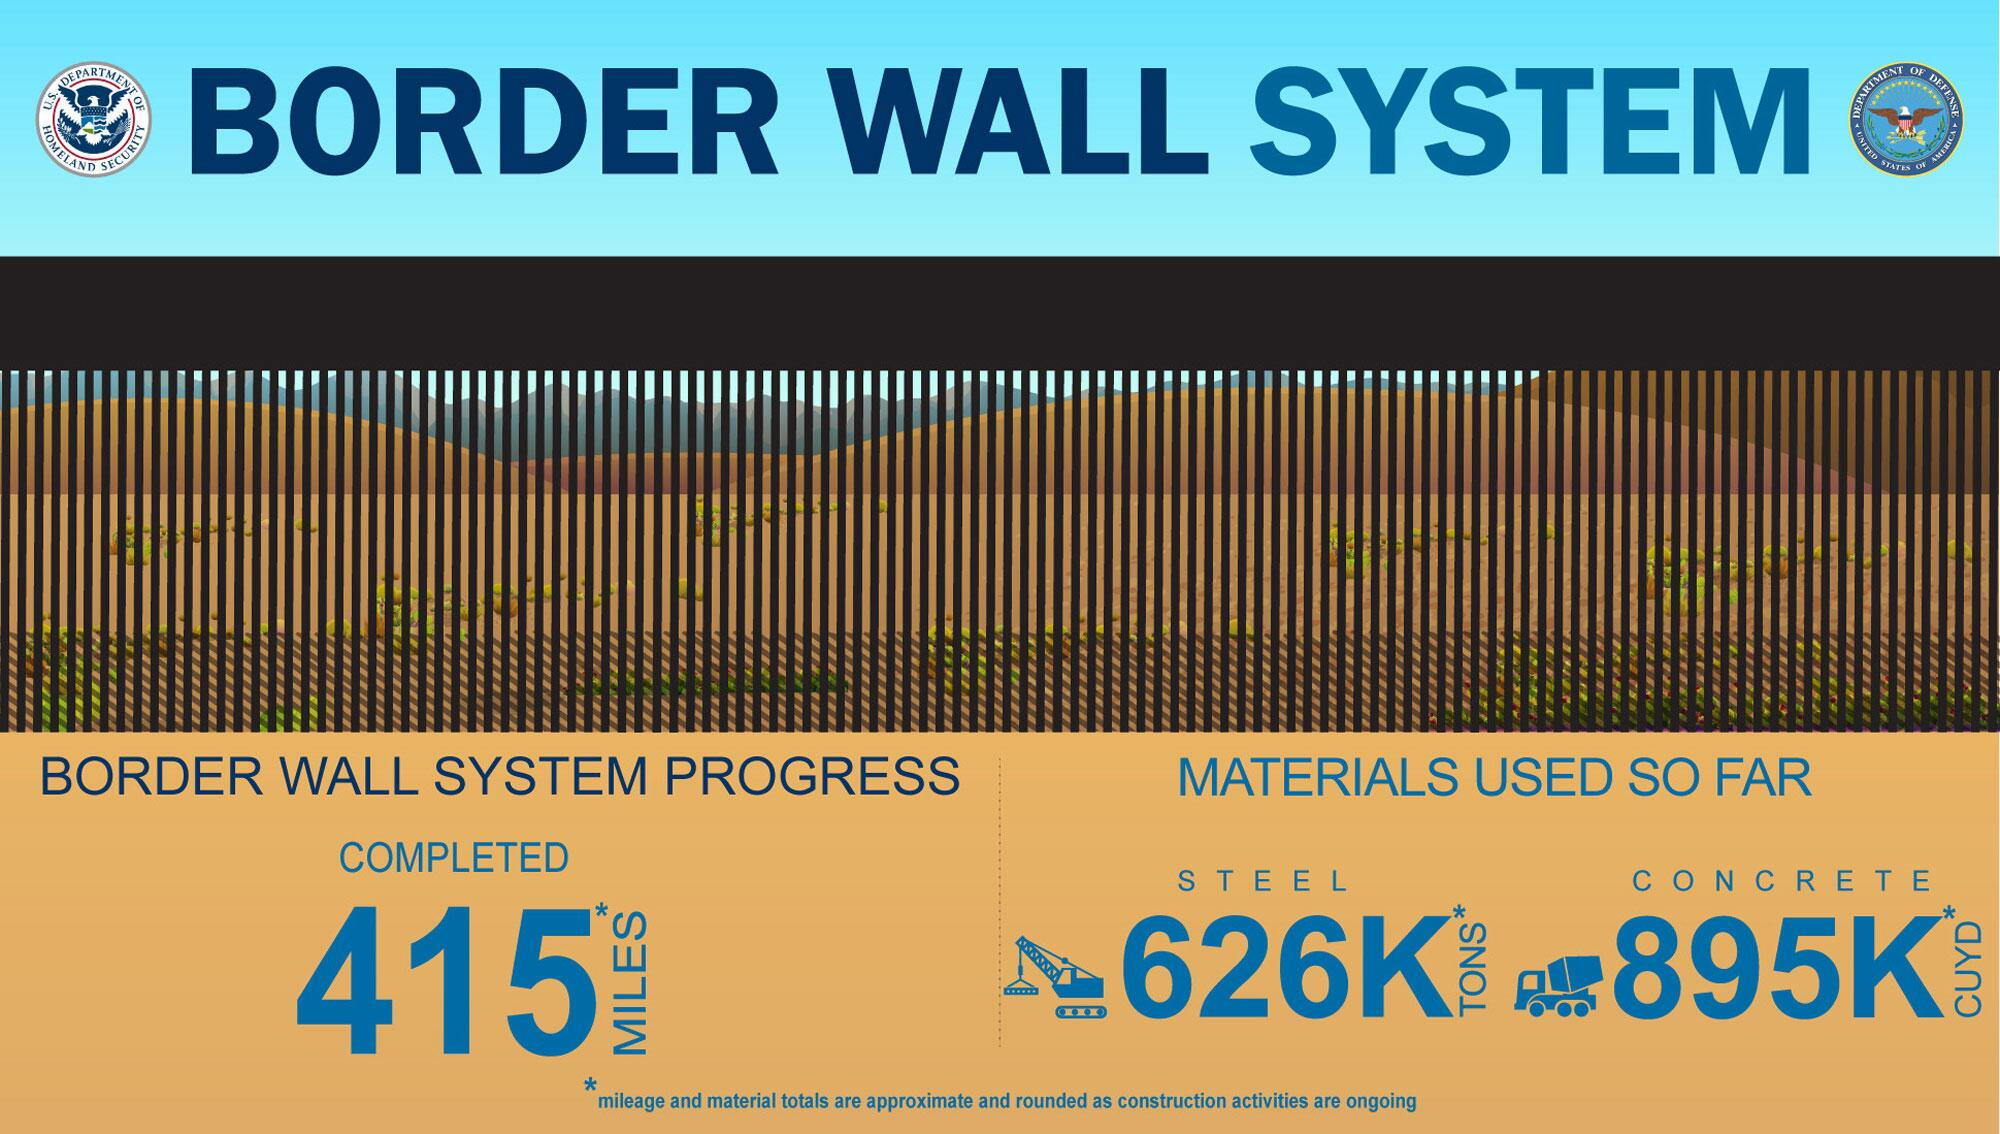 Infographic showing border wall statistics: 415 miles built; 626,000 tons of steel; 895,000 cubic yards concrete